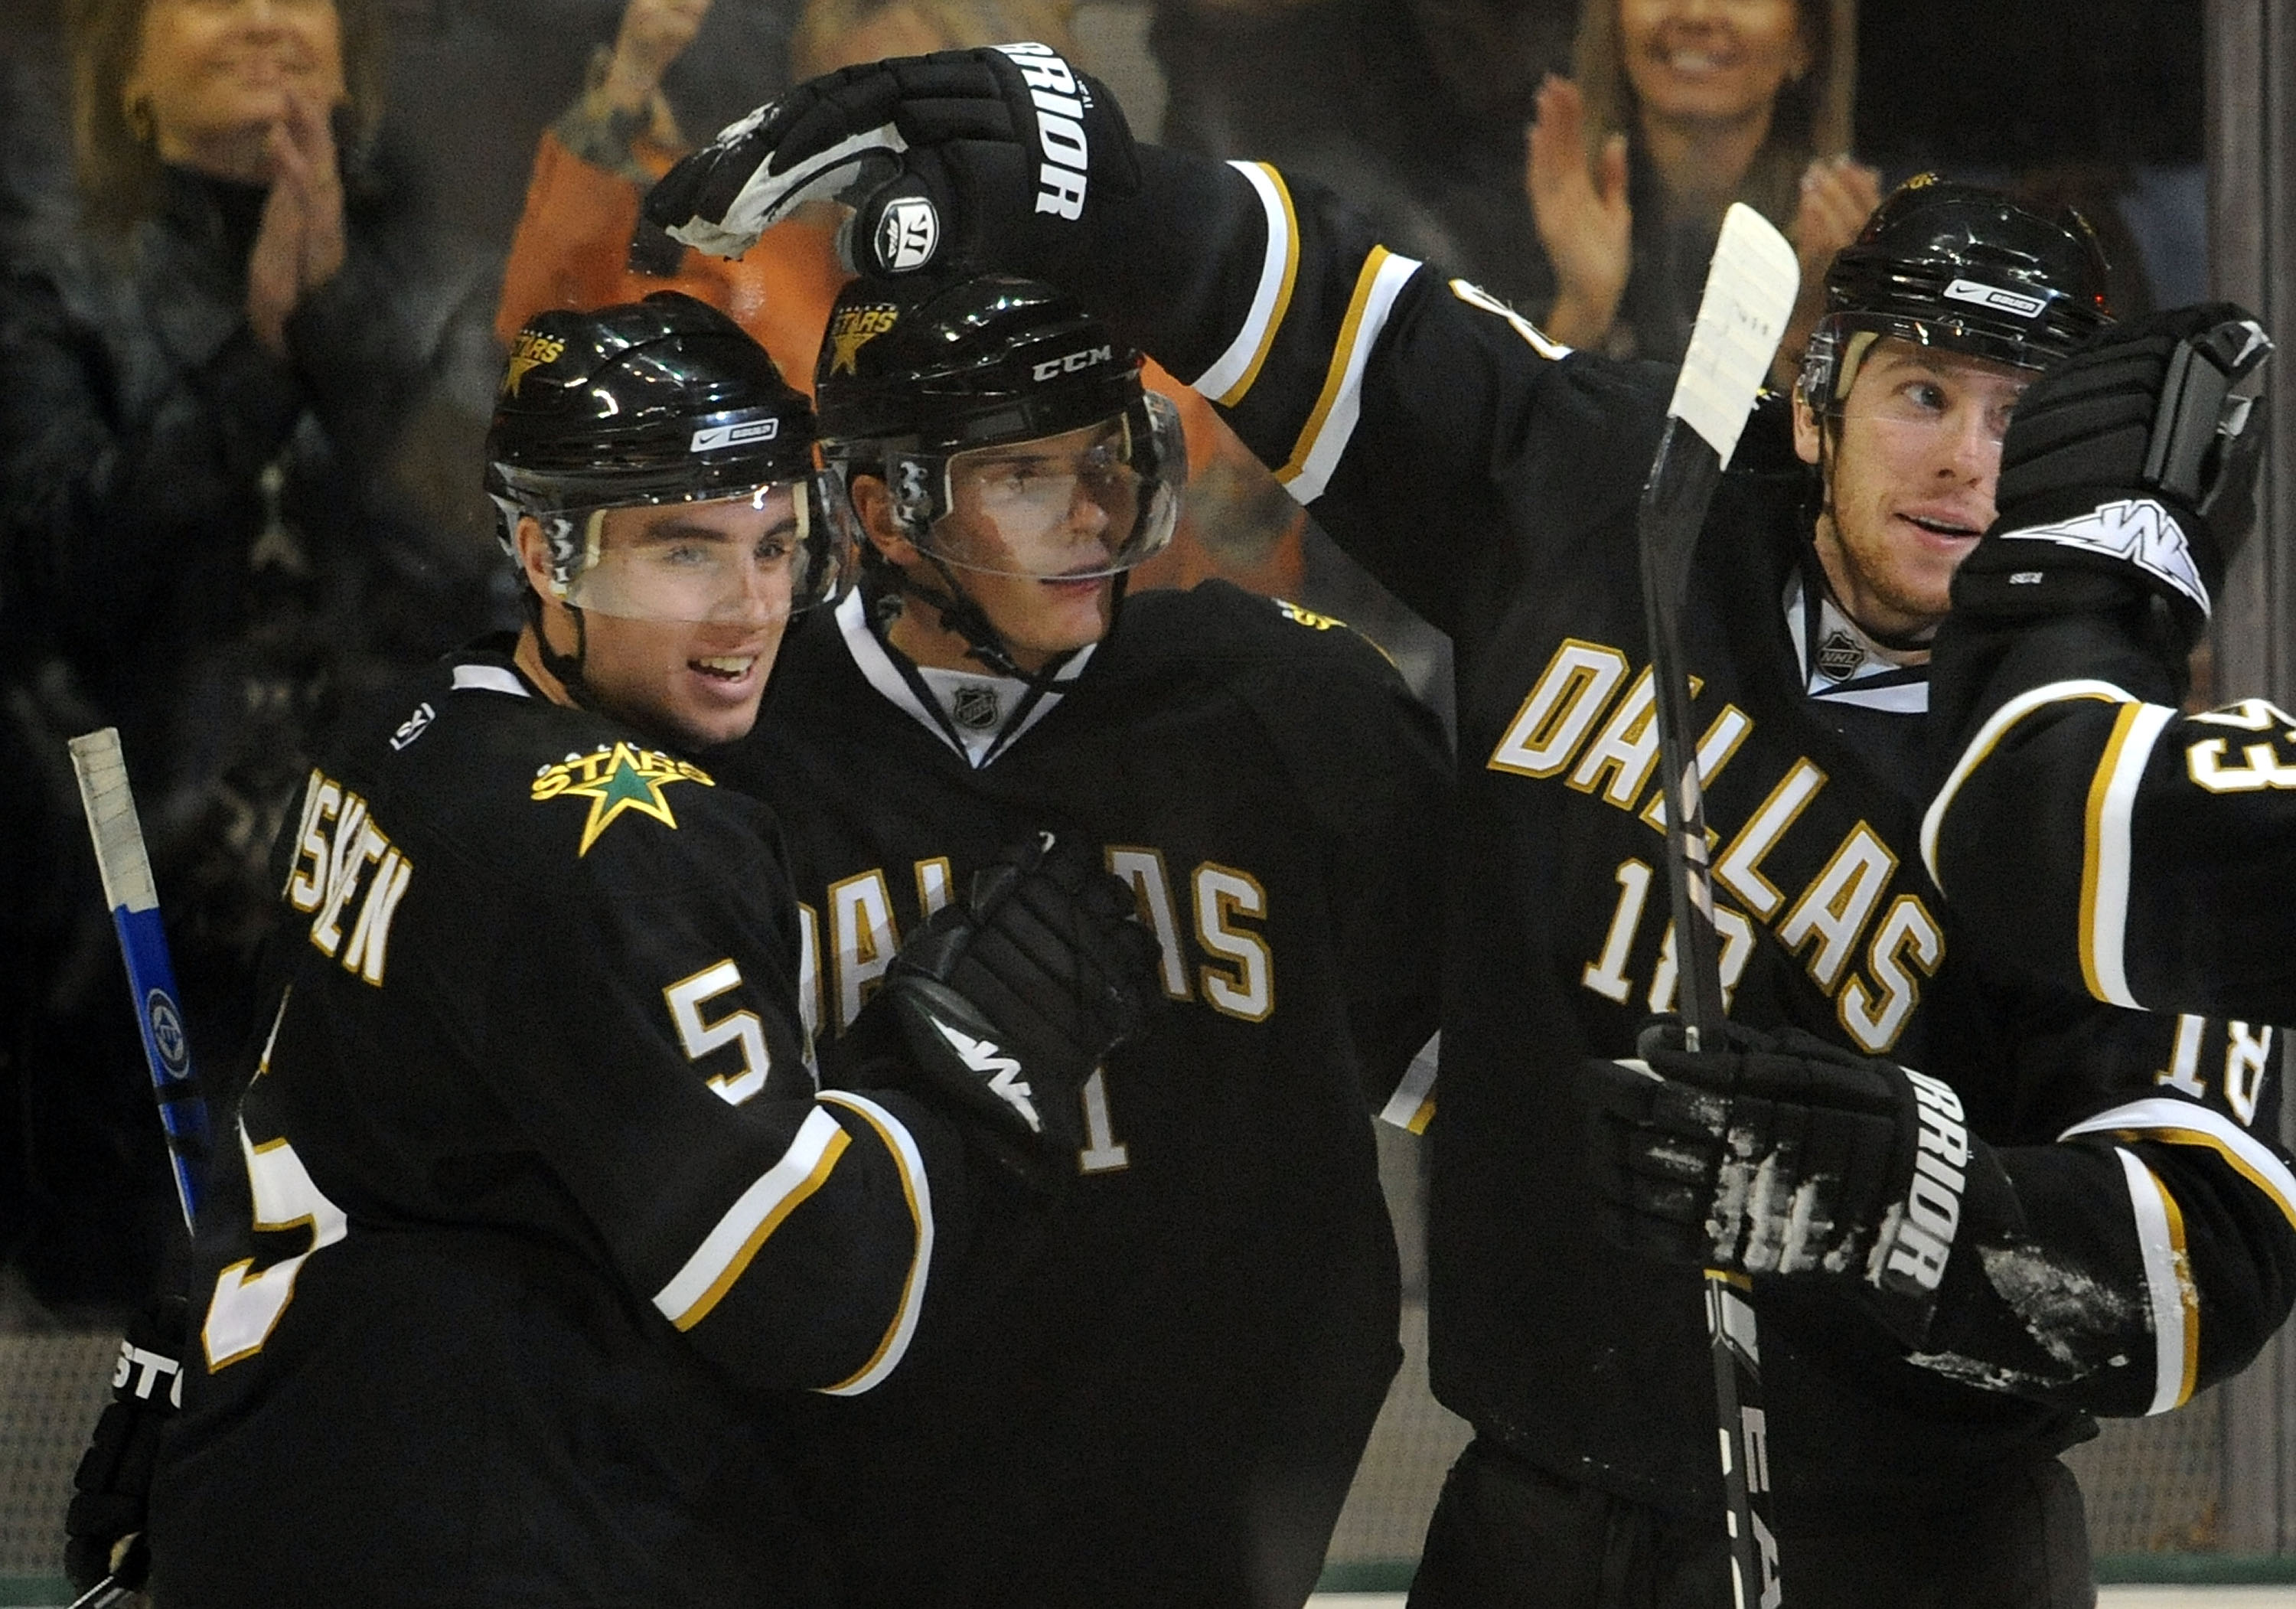 DALLAS - FEBRUARY 03:  (L-R) Matt Niskanen #5, Loui Eriksson #21 and James Neal #18 of the Dallas Stars celebrate a goal against the Calgary Flames in the second period at the American Airlines Center on February 3, 2009 in Dallas, Texas.  (Photo by Ronal